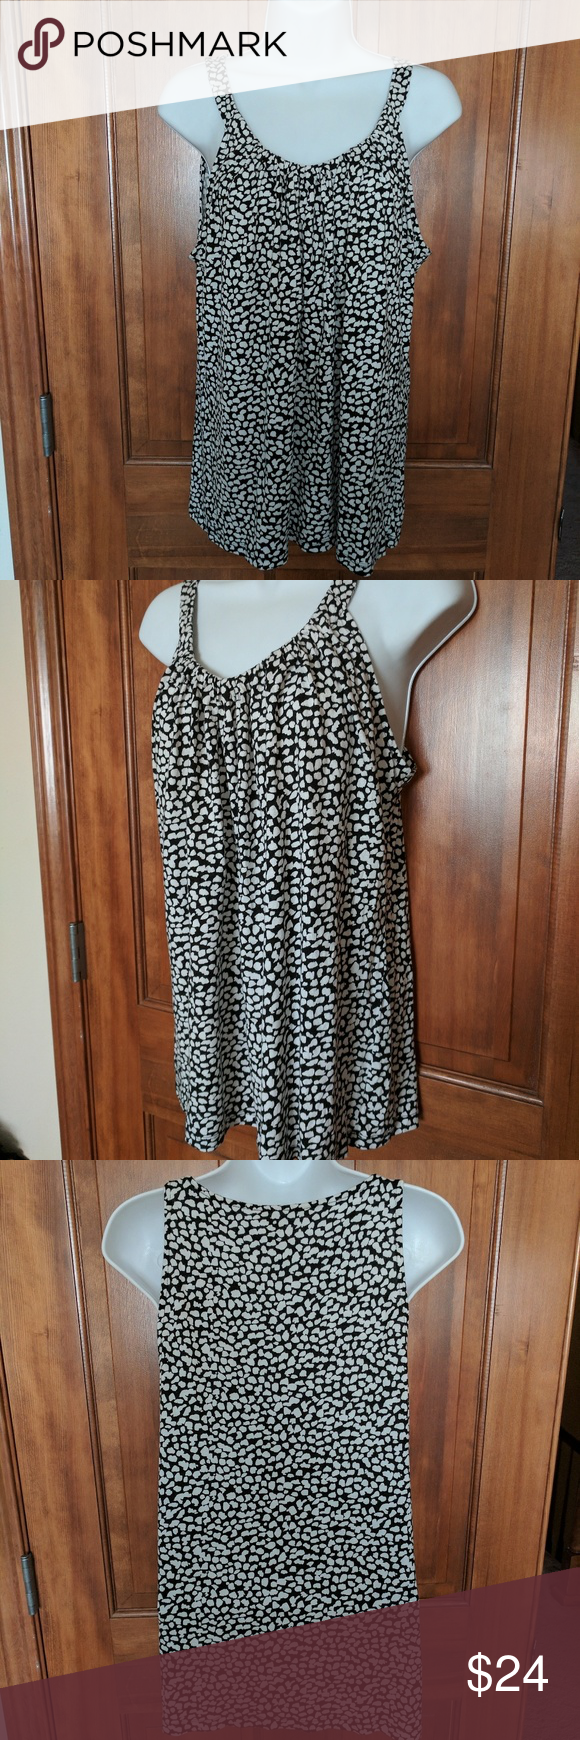 Banana Republic Strappy Roushed Neck Tank Fun black and white cotton tank to with subtle gathering along the front neckline. Soft and ready to wear.  Questions welcome. Banana Republic Tops Tank Tops